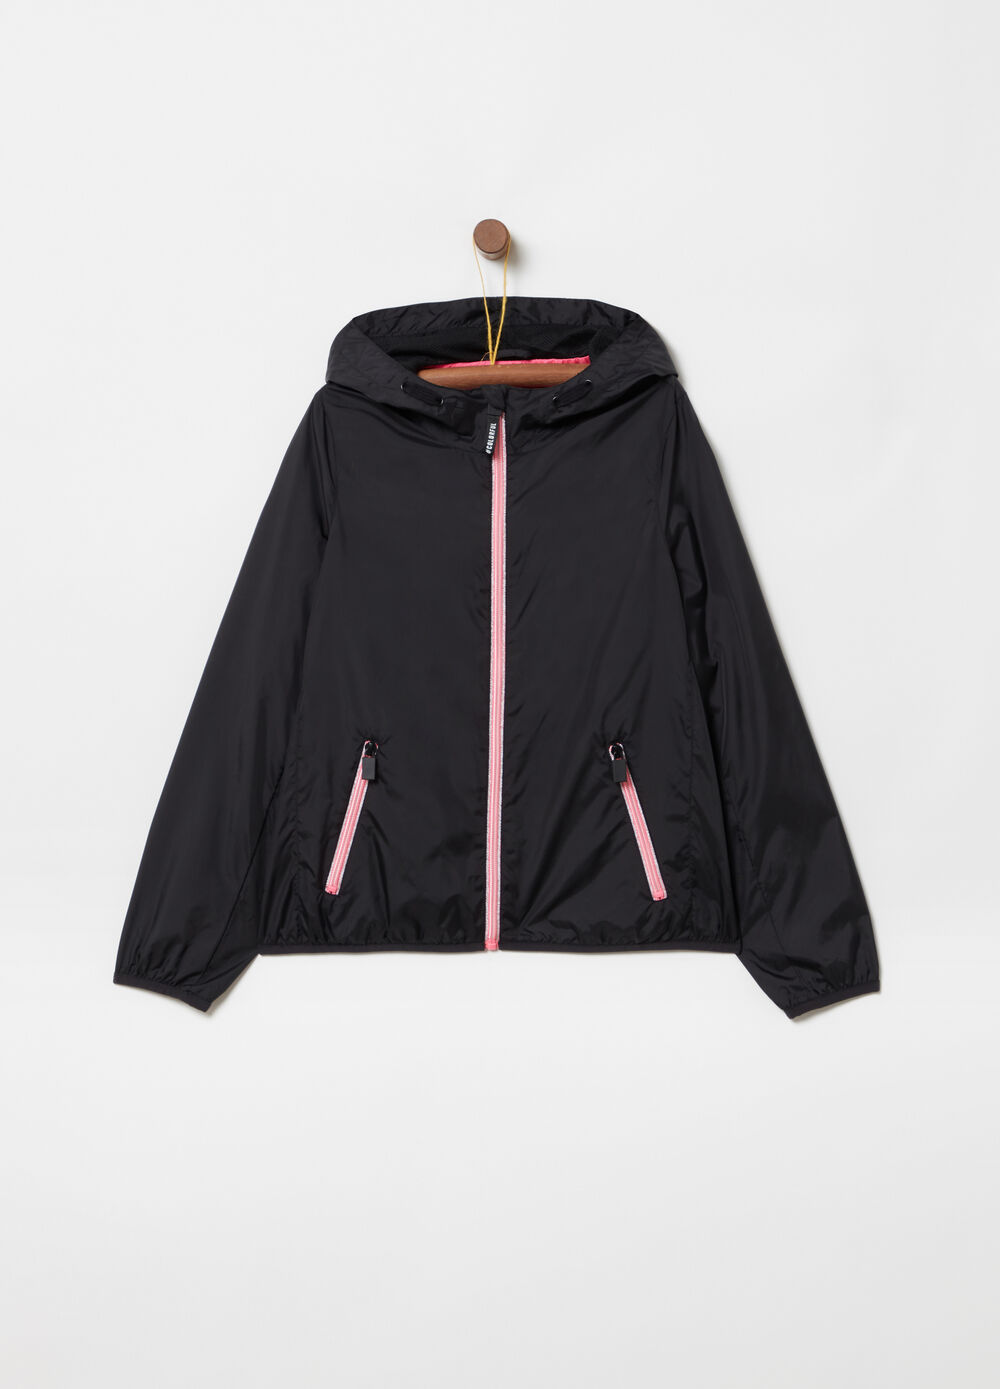 Lightweight jacket with pockets and hood